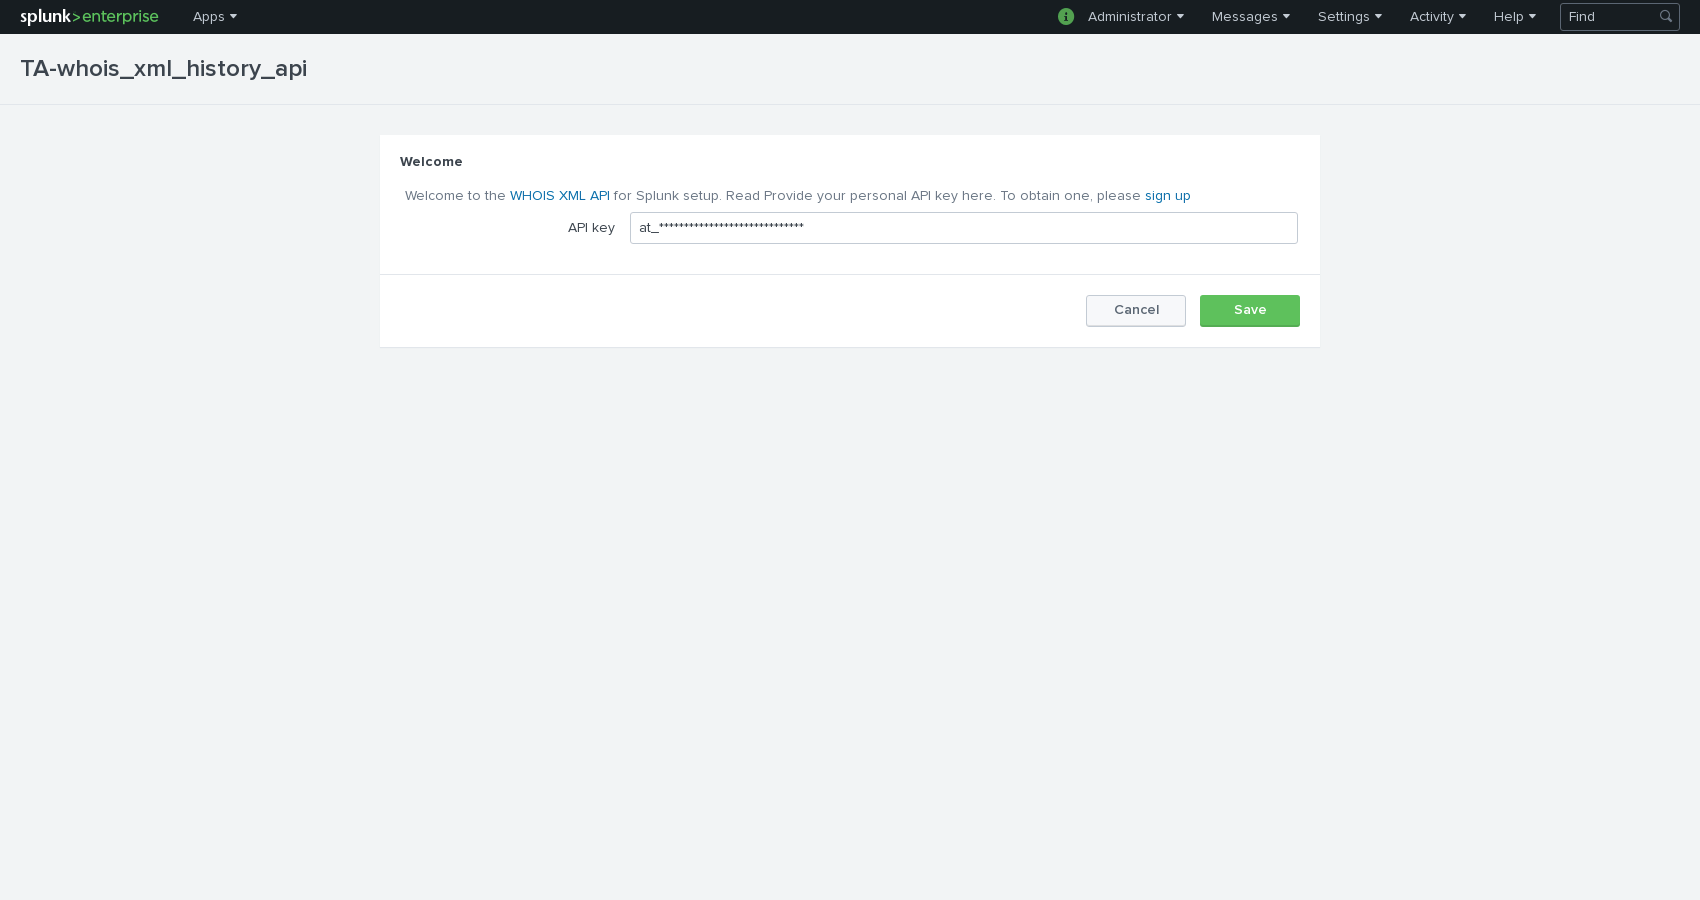 Fill in your API key and click on Save.